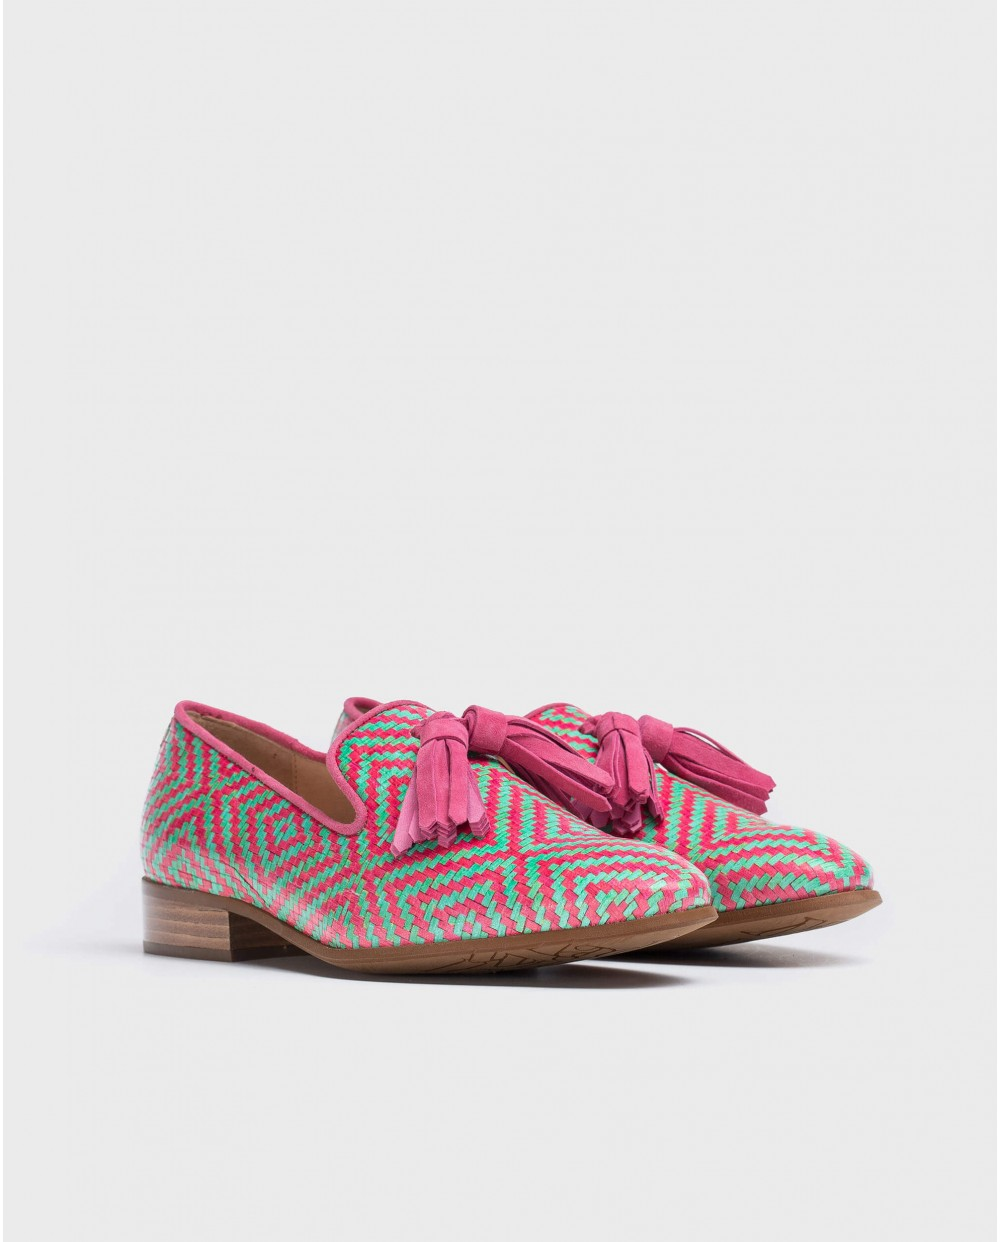 Wonders-Outlet-braided leather moccasin